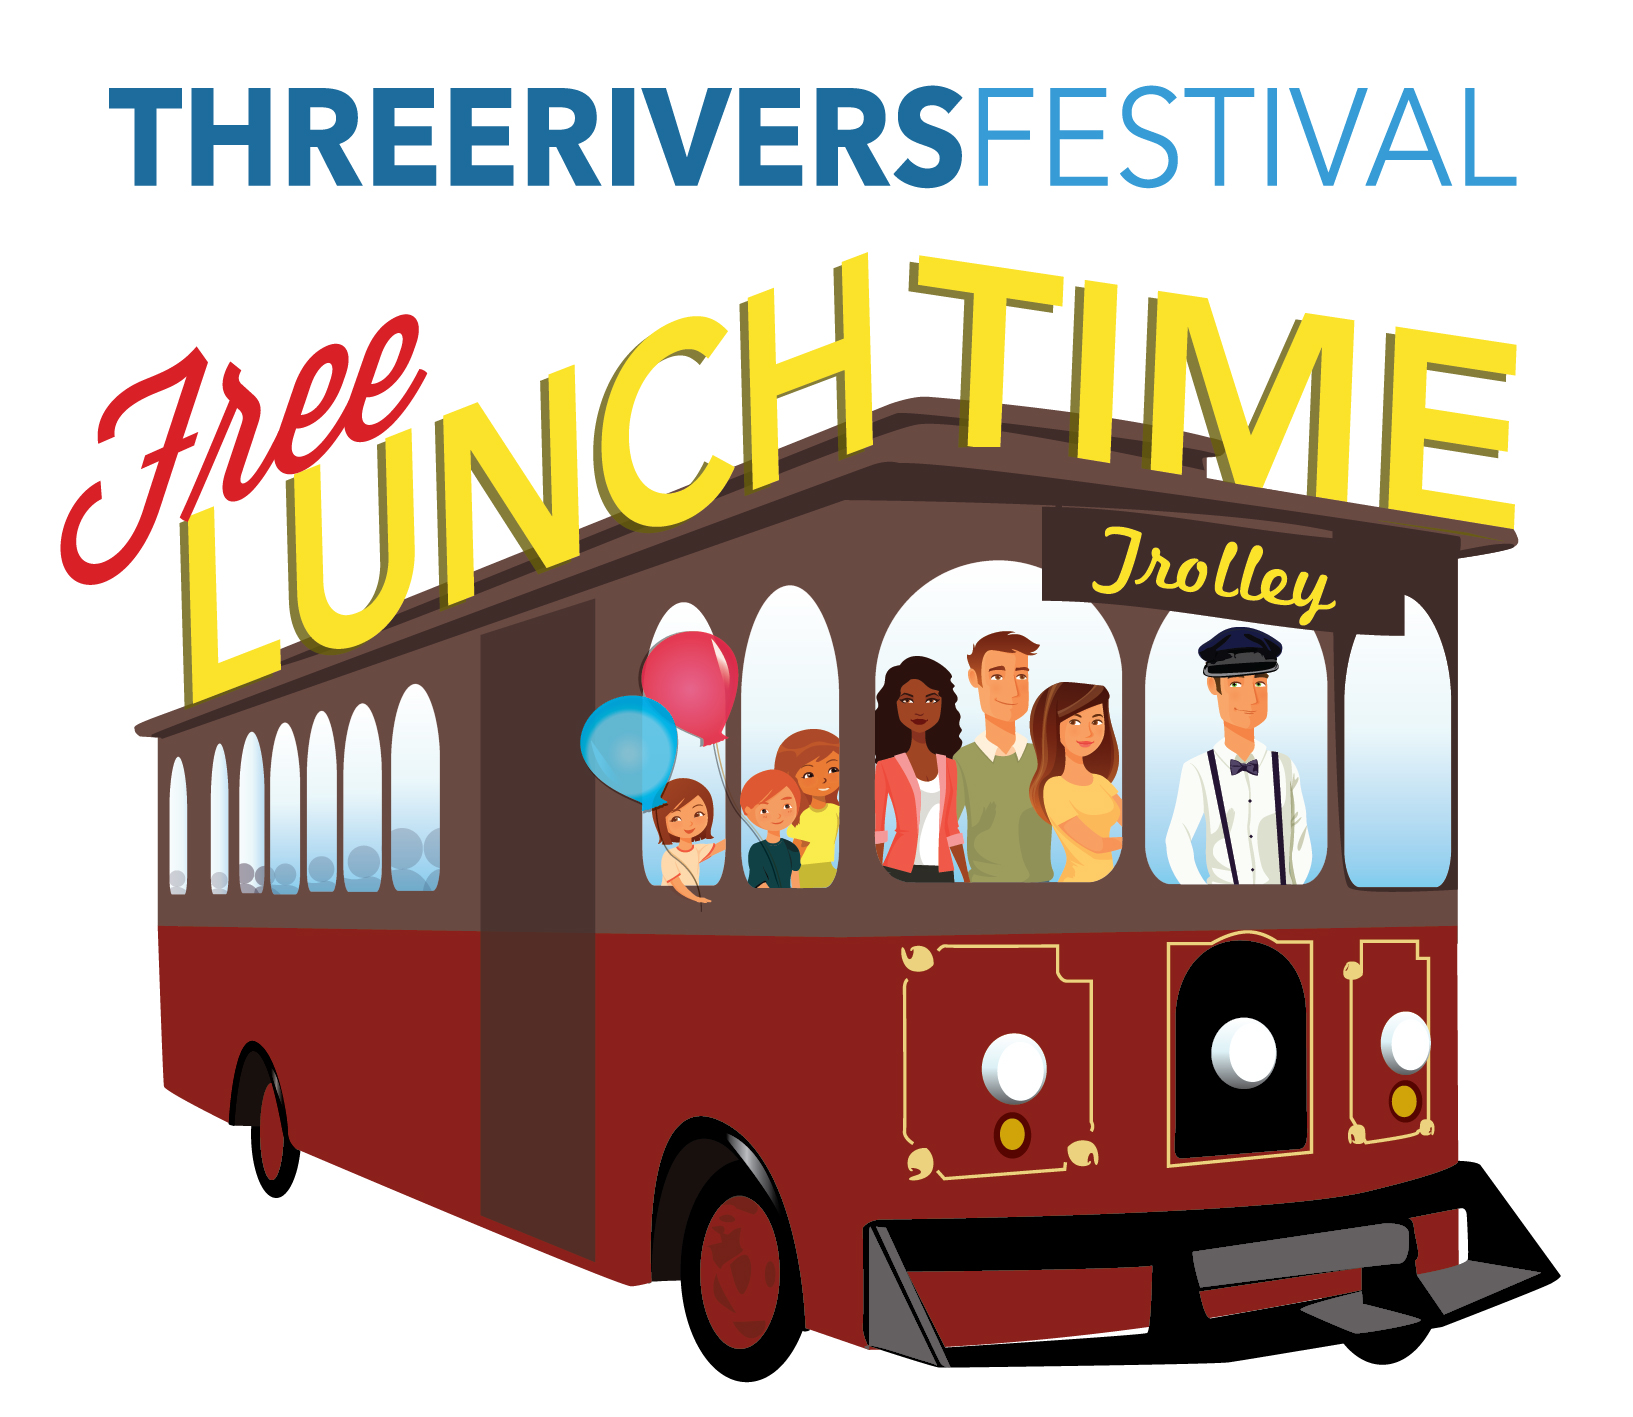 Trolley clipart lunch Lunchtime Lunch trolley – Rivers